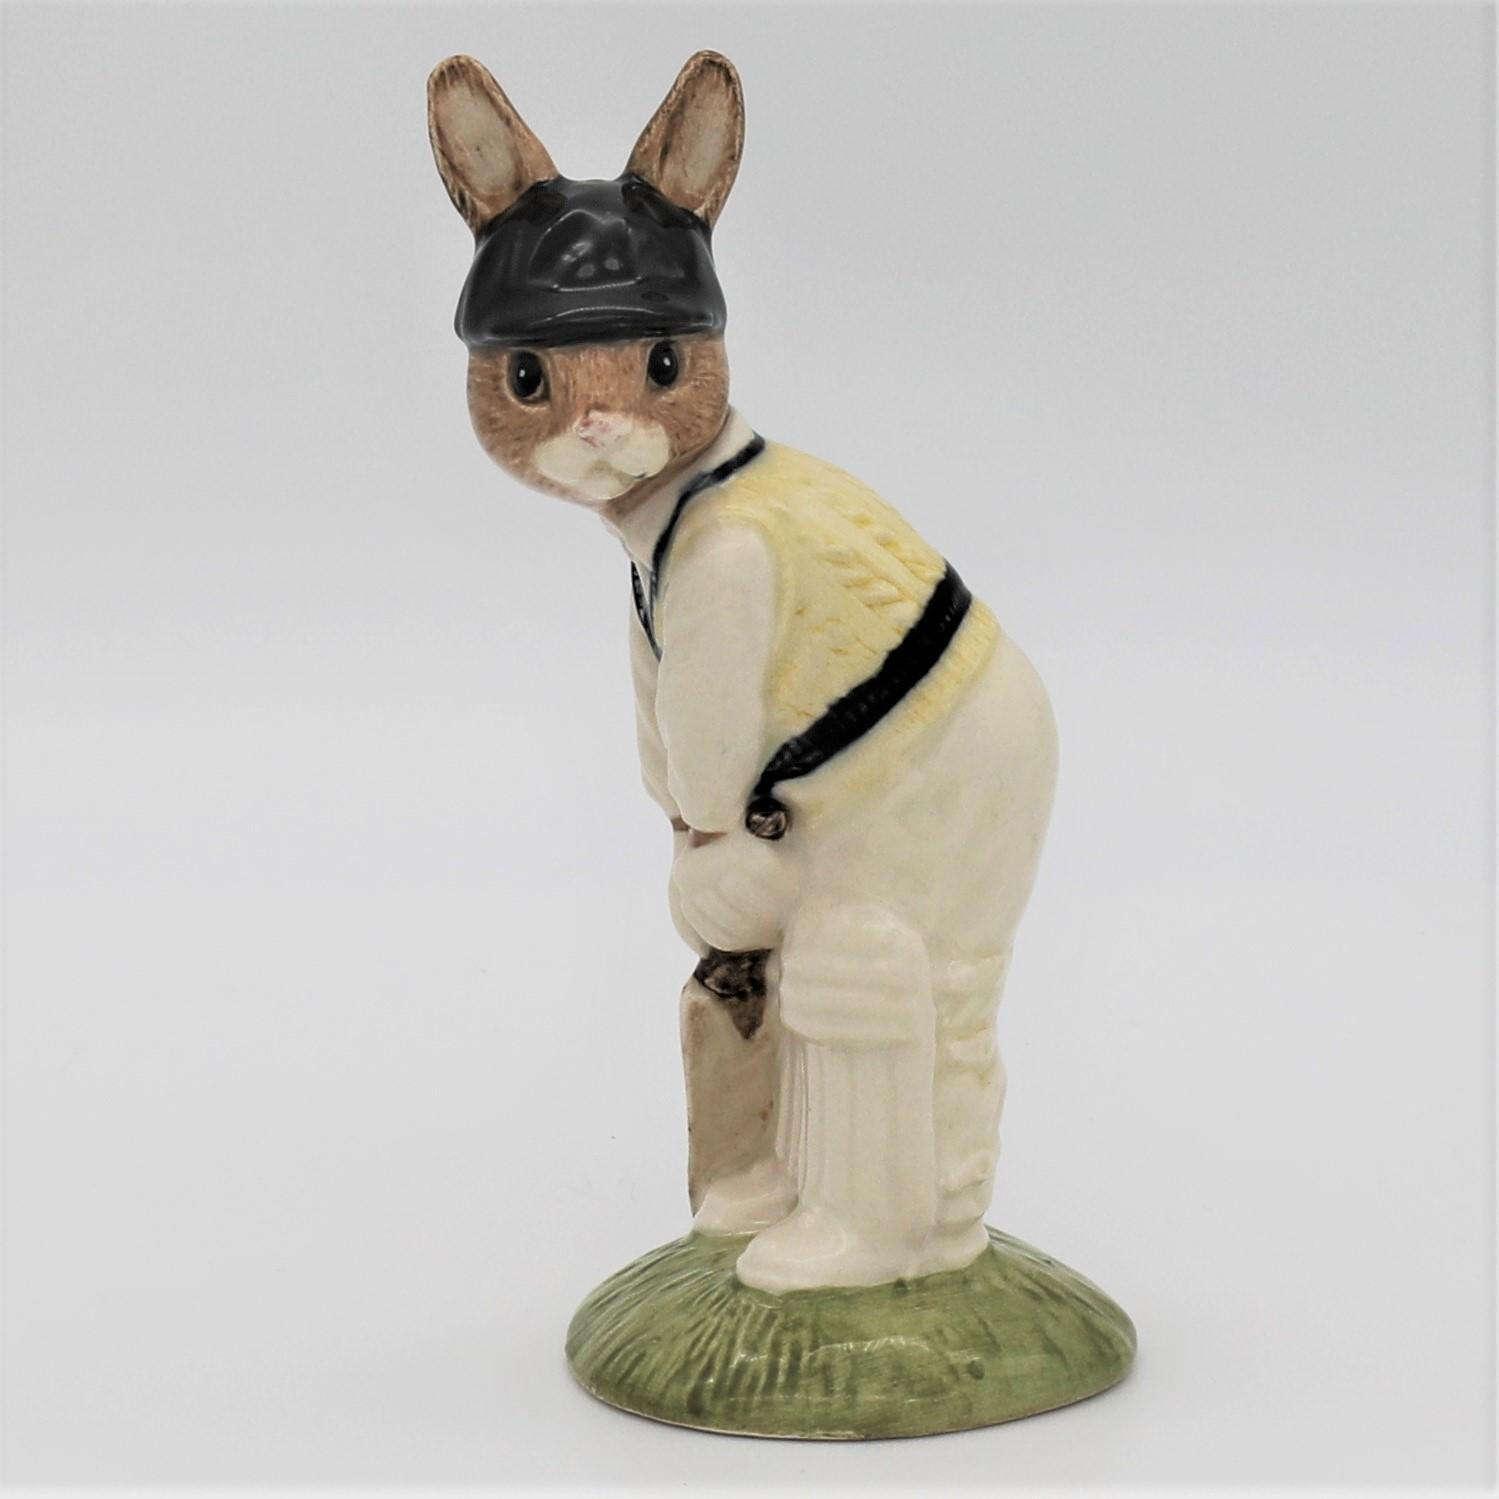 Royal Doulton Bunnykins cricket figure - DB144 Batsman front